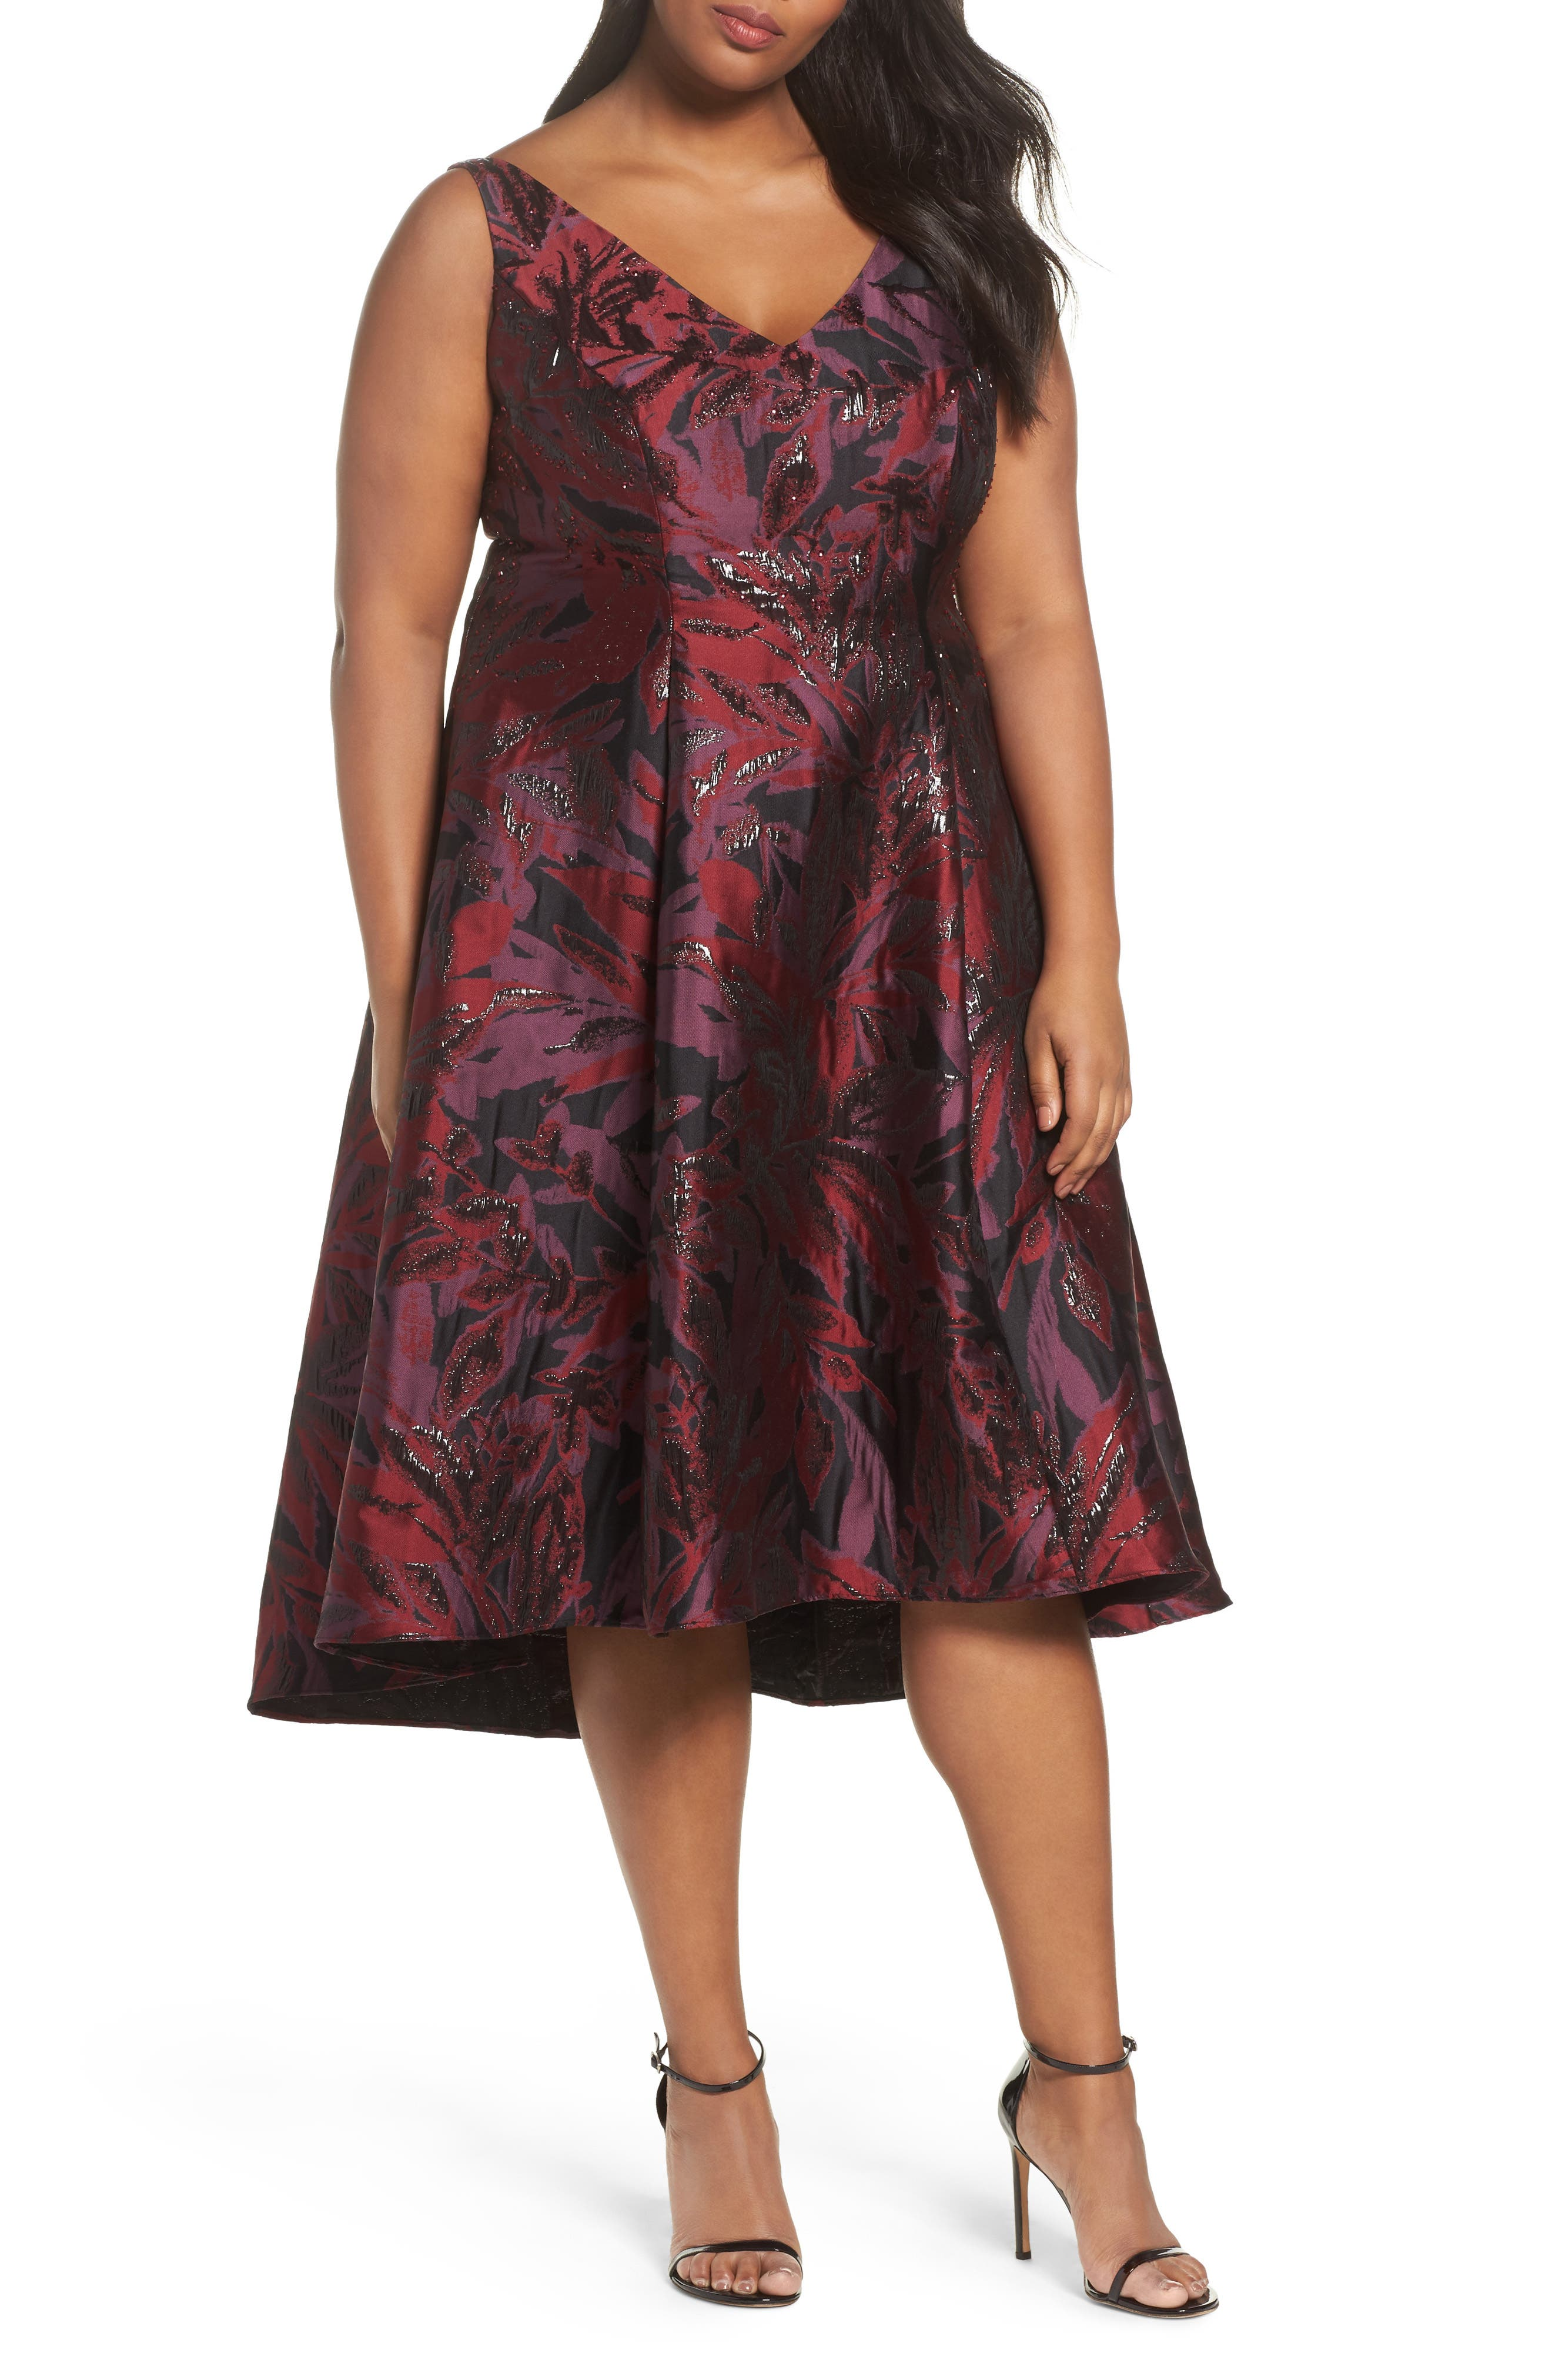 Alternate Image 1 Selected - Adrianna Papell Metallic Floral Jacquard Fit & Flare Dress (Plus Size)